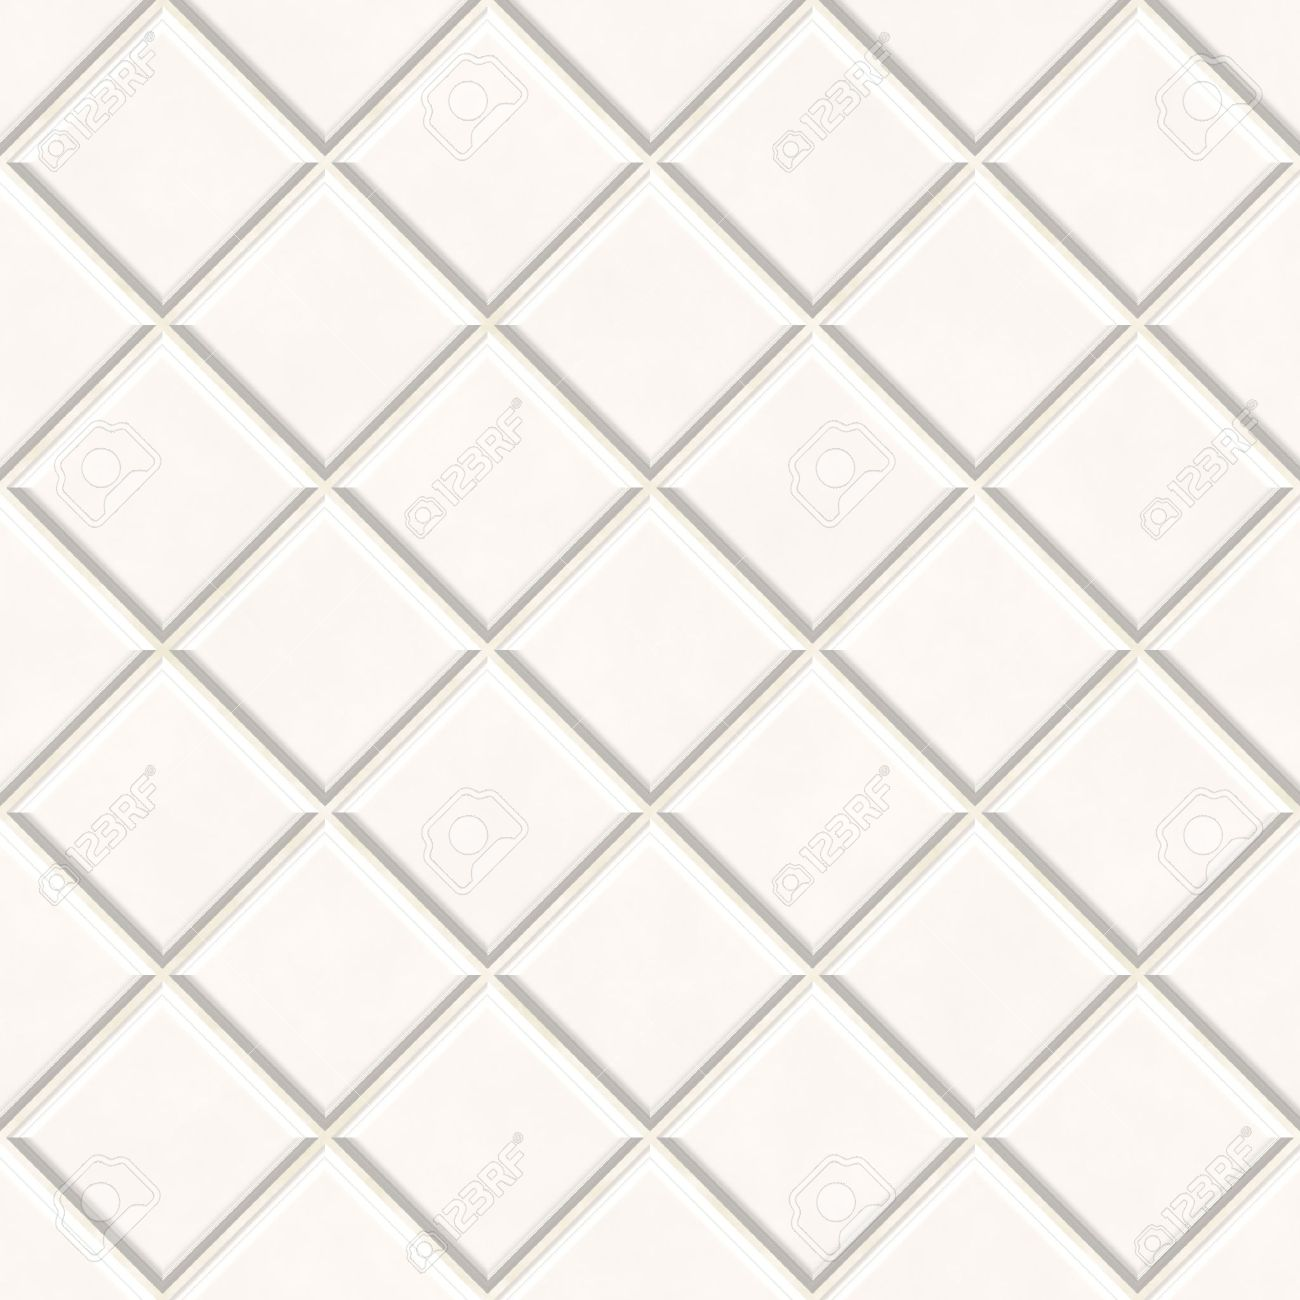 Kitchen Tile Texture Seamless seamless white tiles texture background, kitchen or bathroom